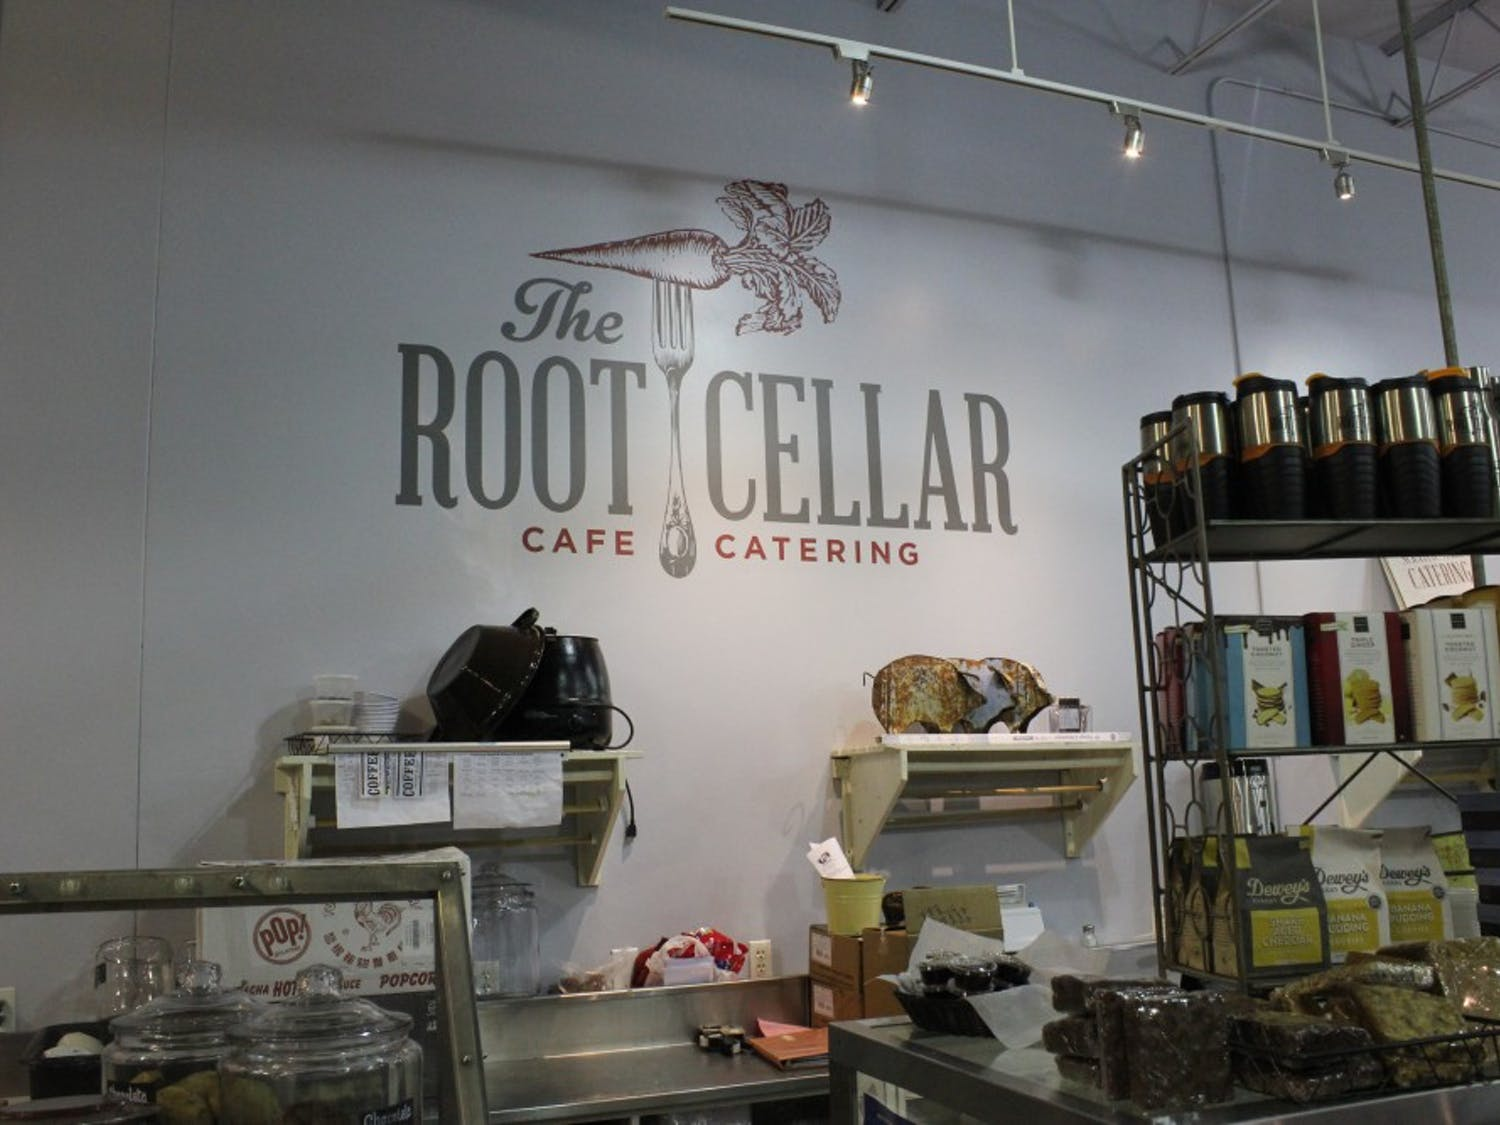 The Root Cellar in Chapel Hill, NC plans to open a new location.